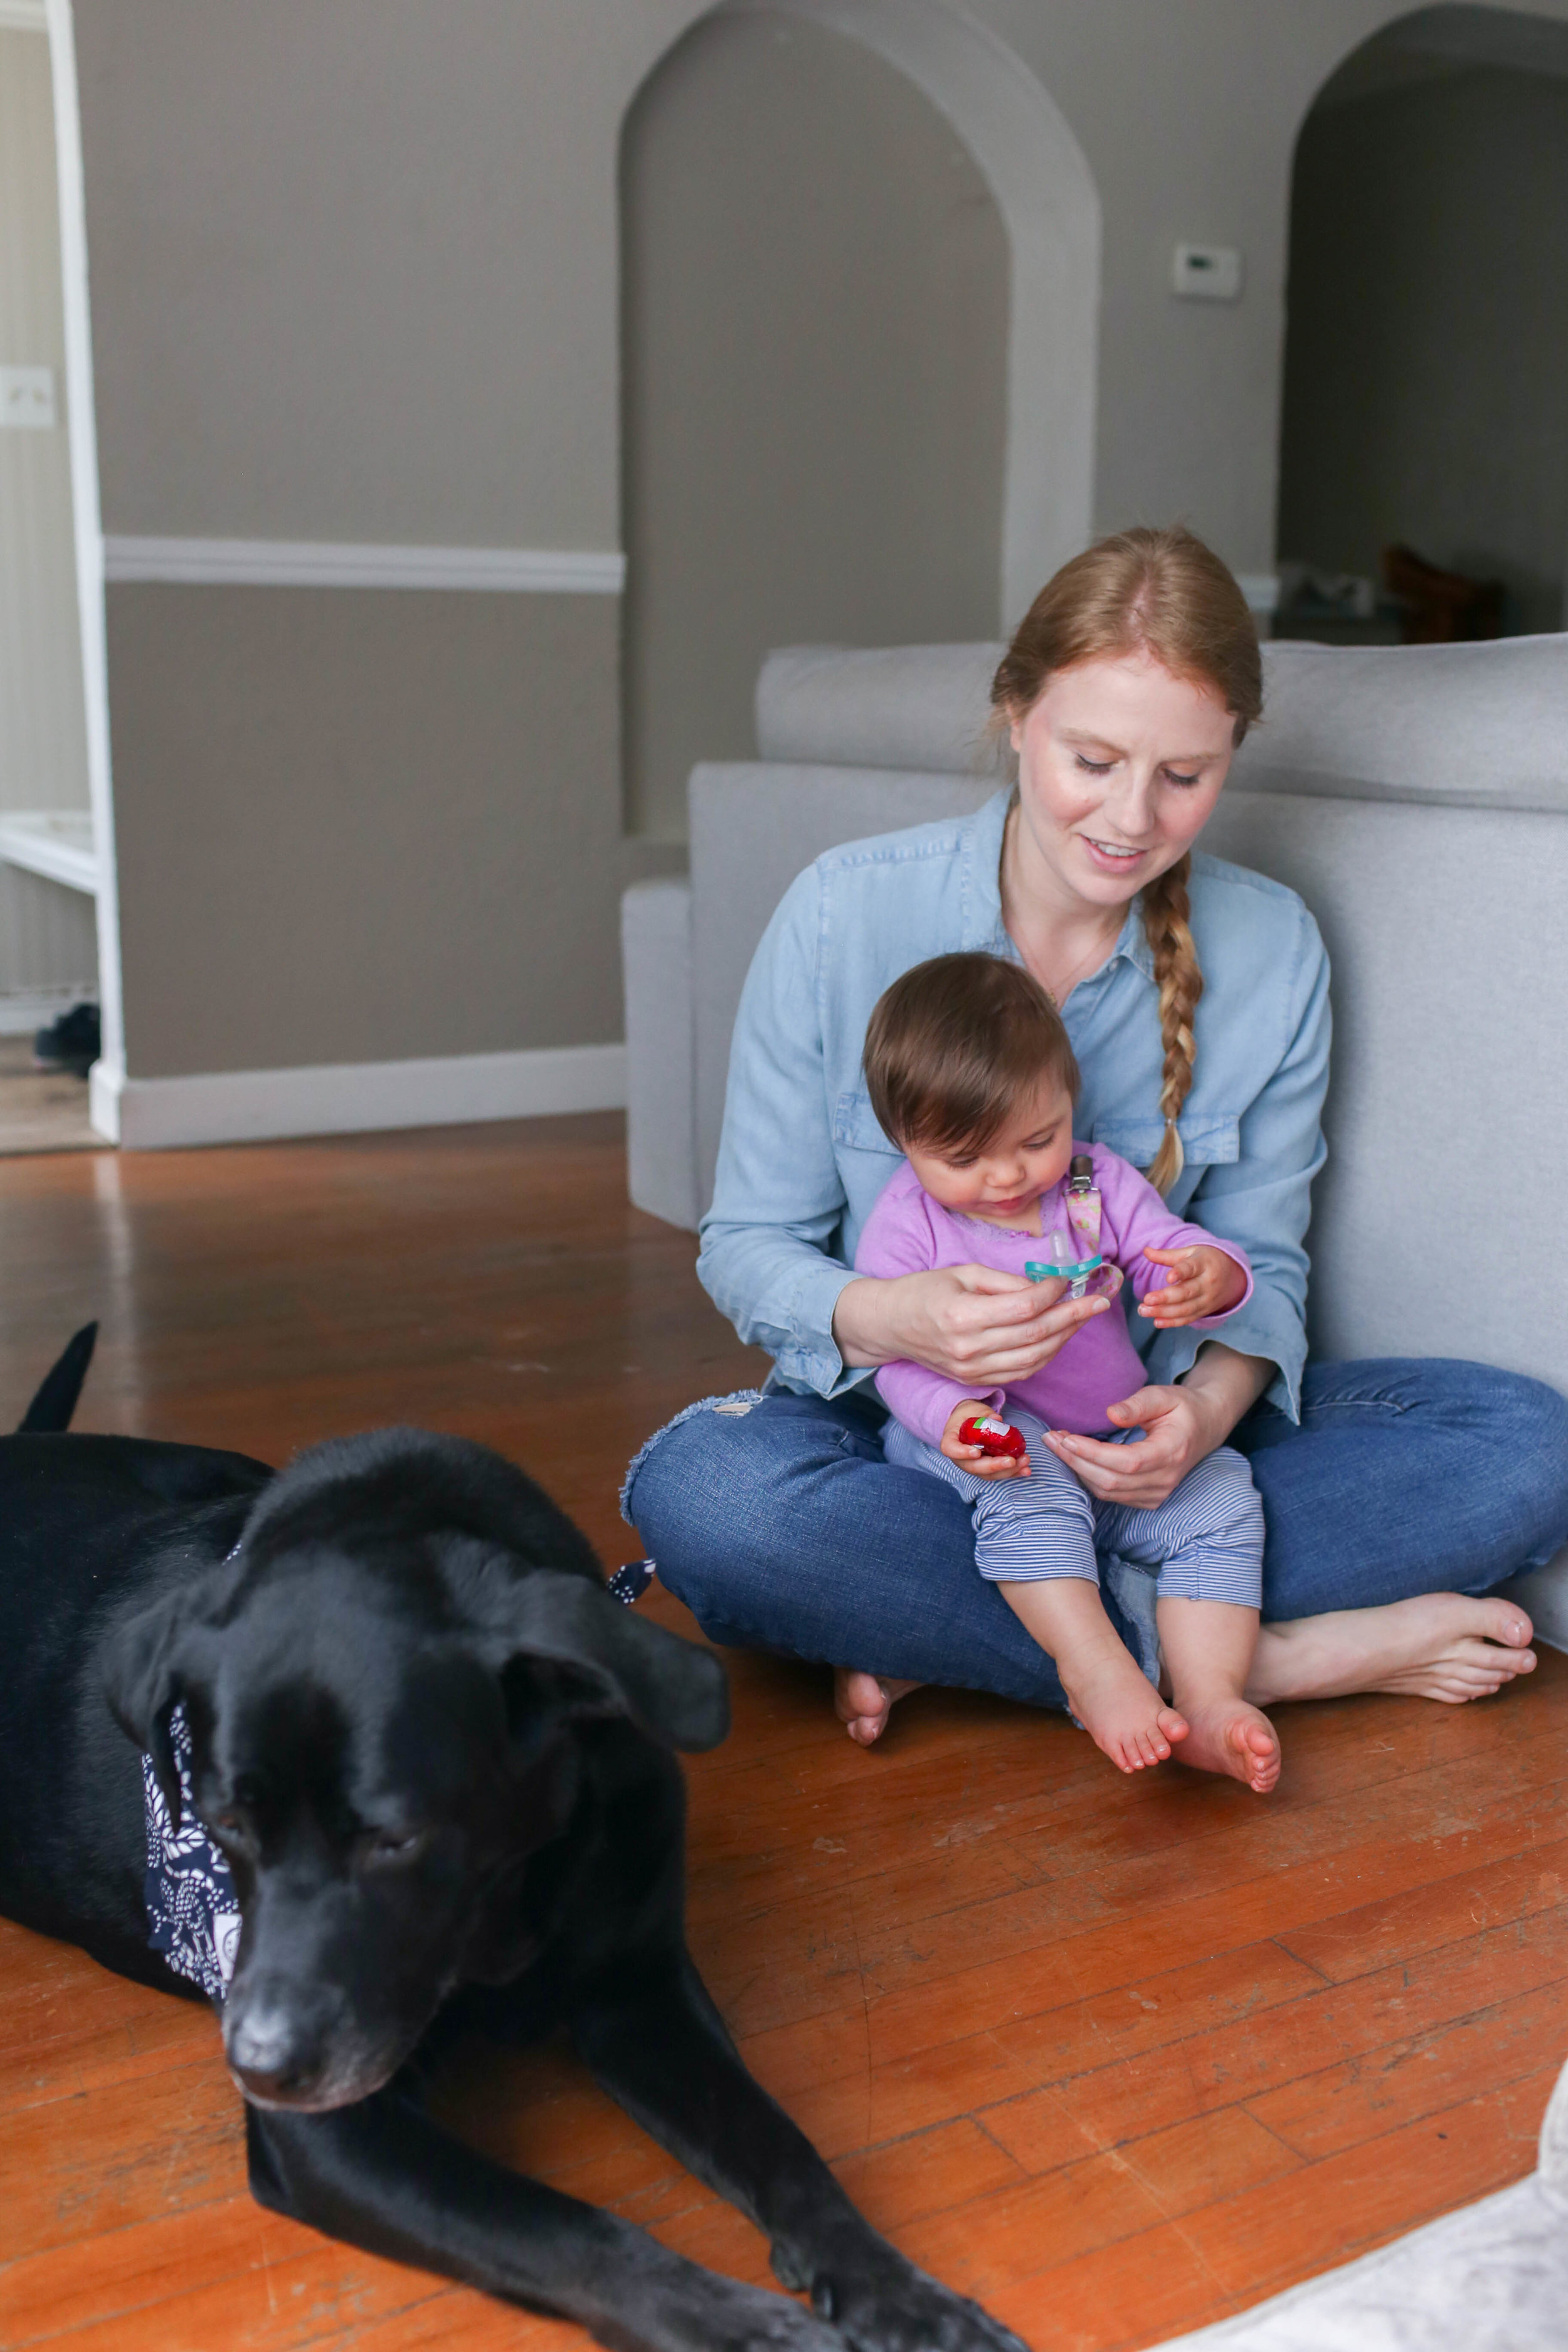 Gennifer Rose_10 Simple Ways to Prepare Your Home for a New Dog_10.jpg